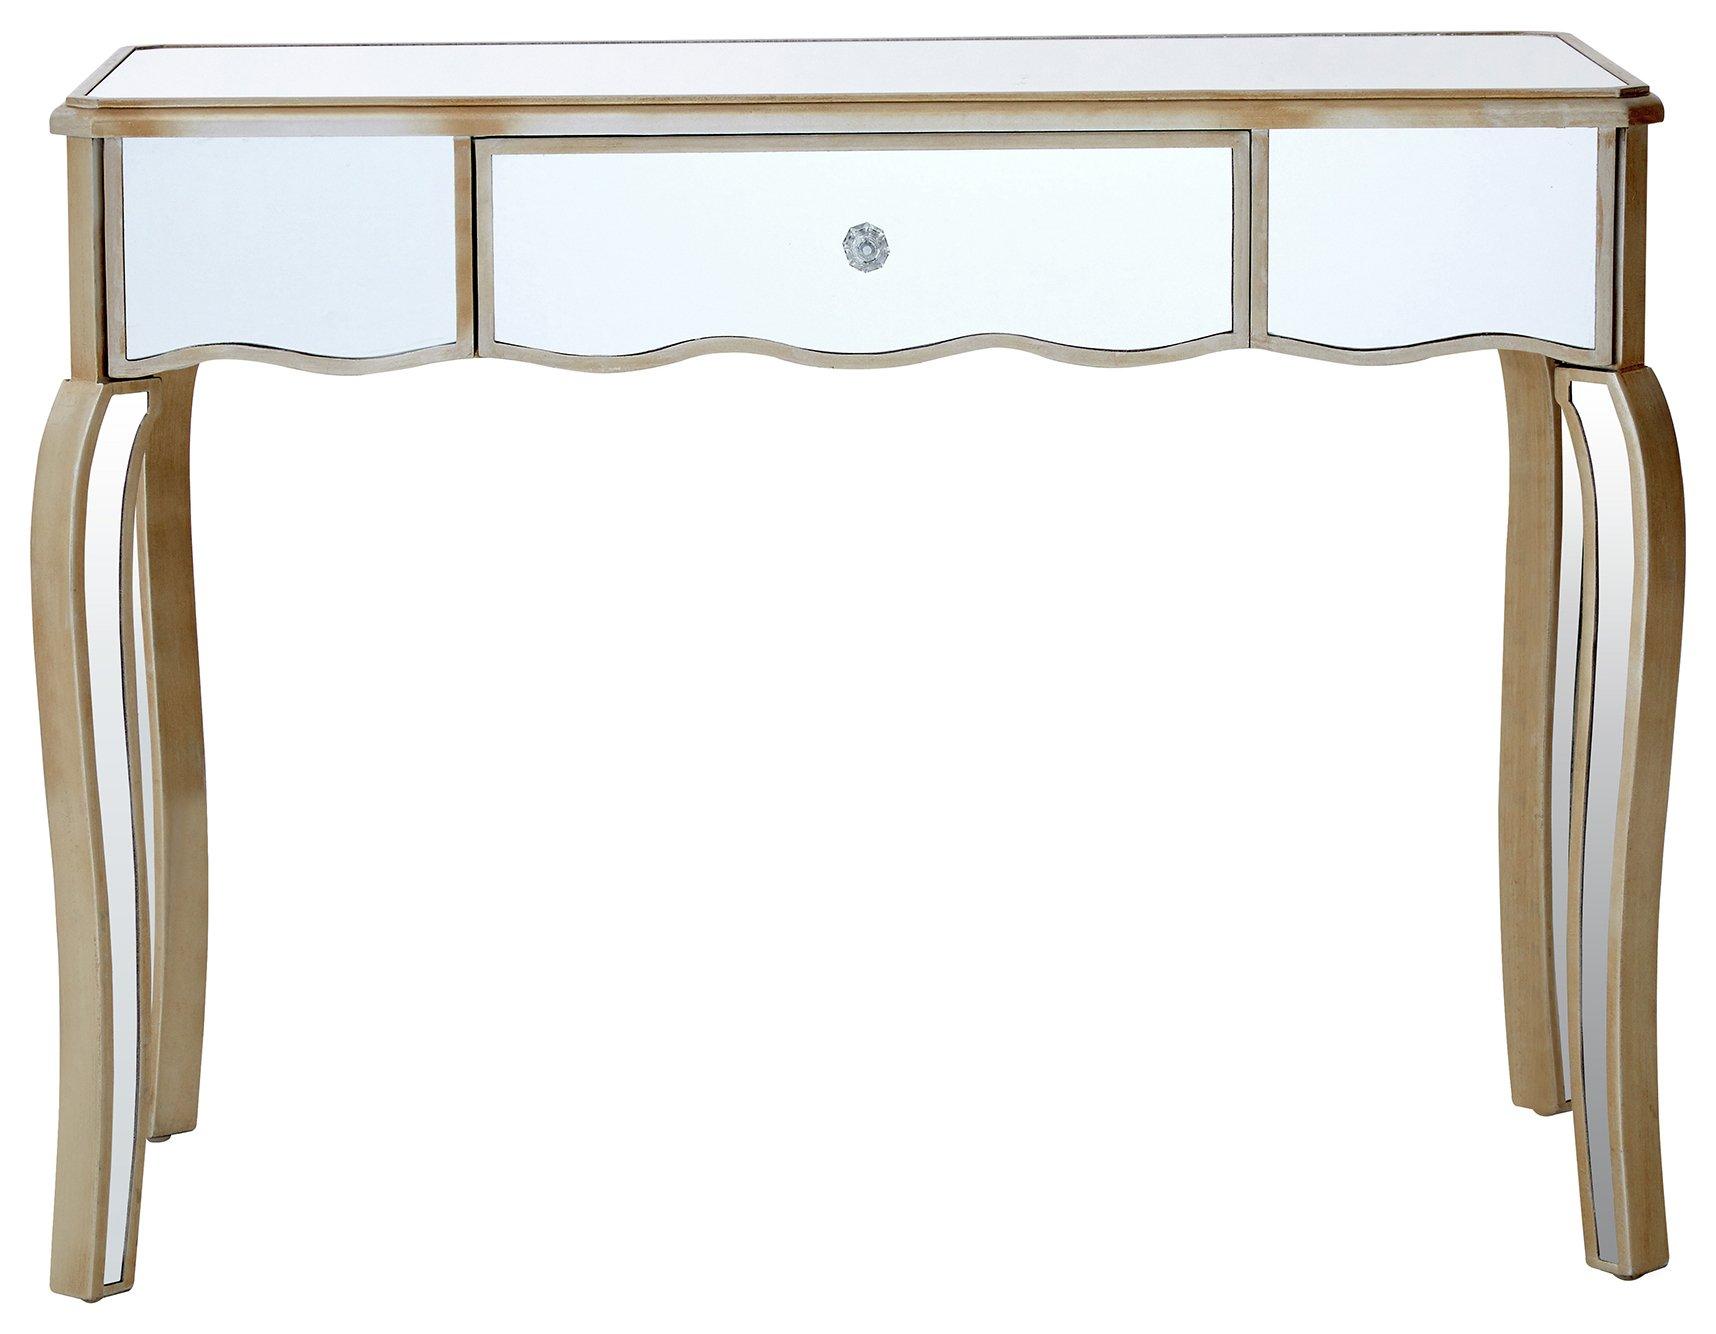 Premier Housewares Tiffany Mirror Finish Dressing Table. at Argos from Premier housewares